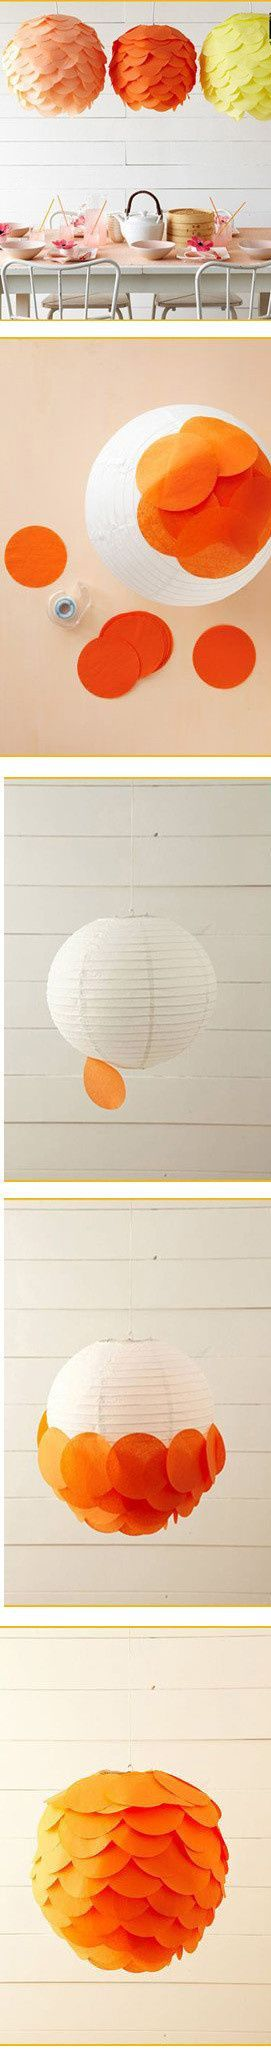 Diy Paper Lanterns – Lets make it colorful....15 Creative Diy Paper Lanterns Ideas to Brighten Your Home #diyCraft